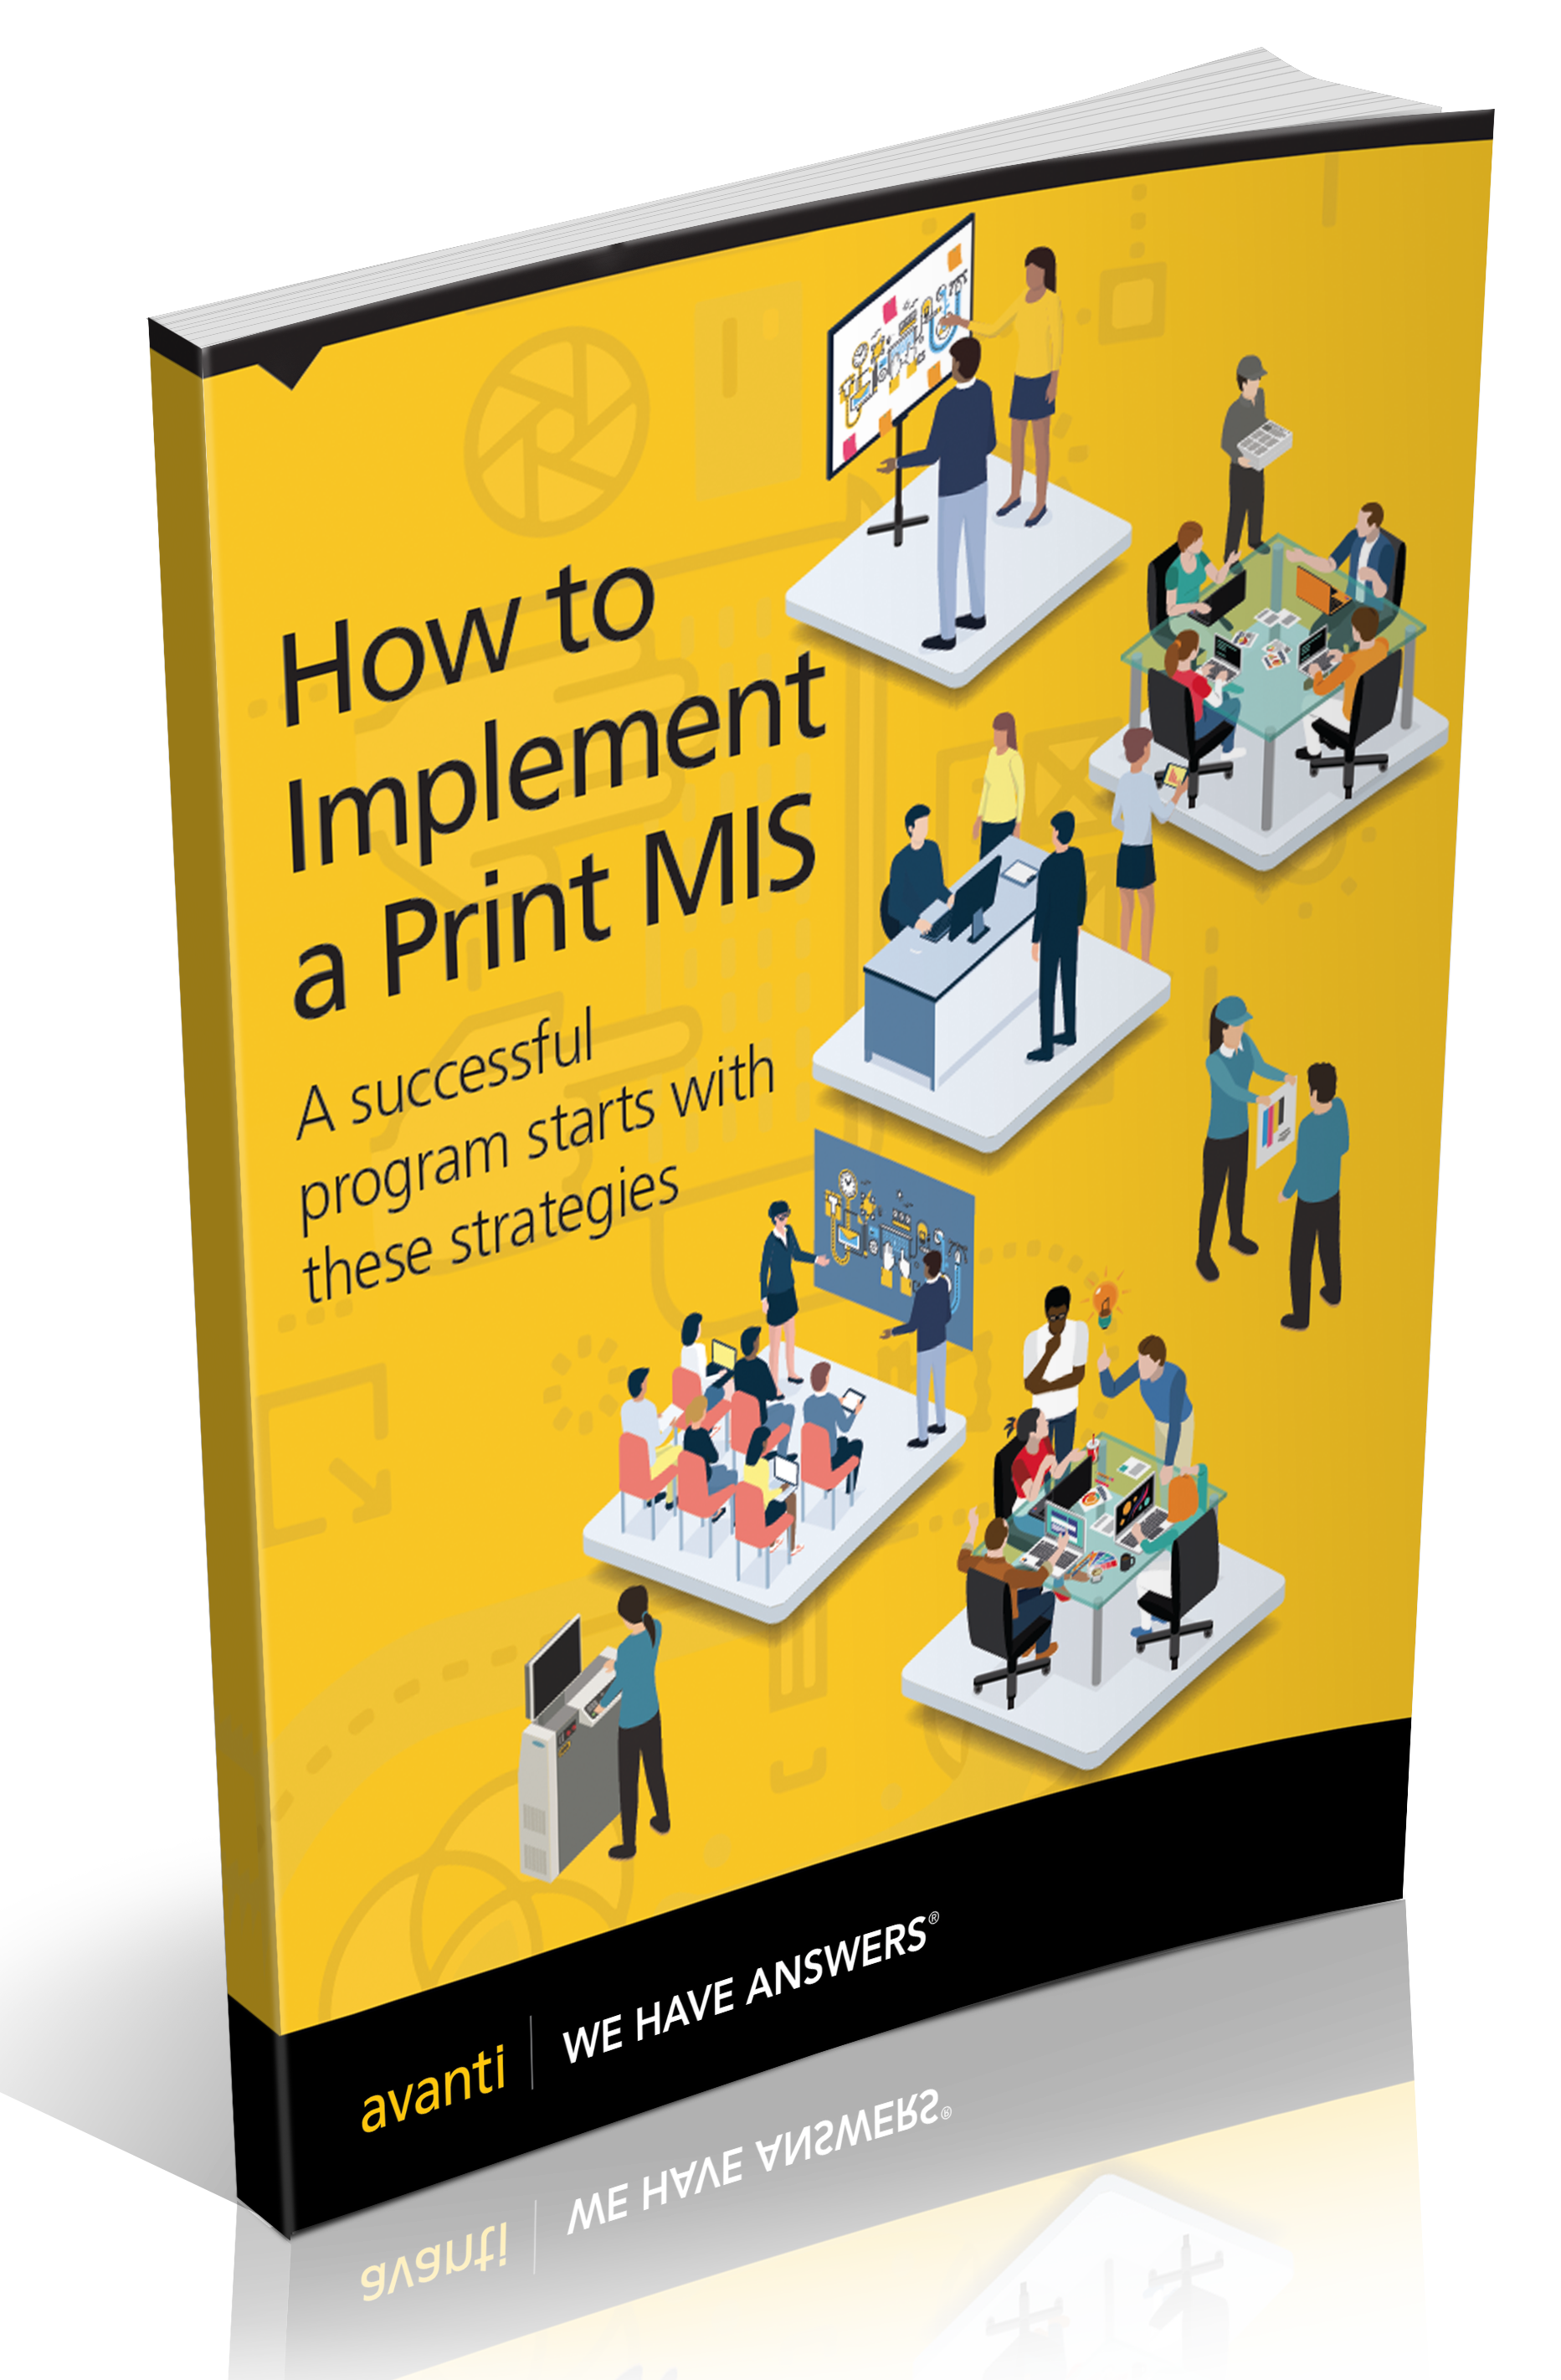 How to Implement a PrinT mis